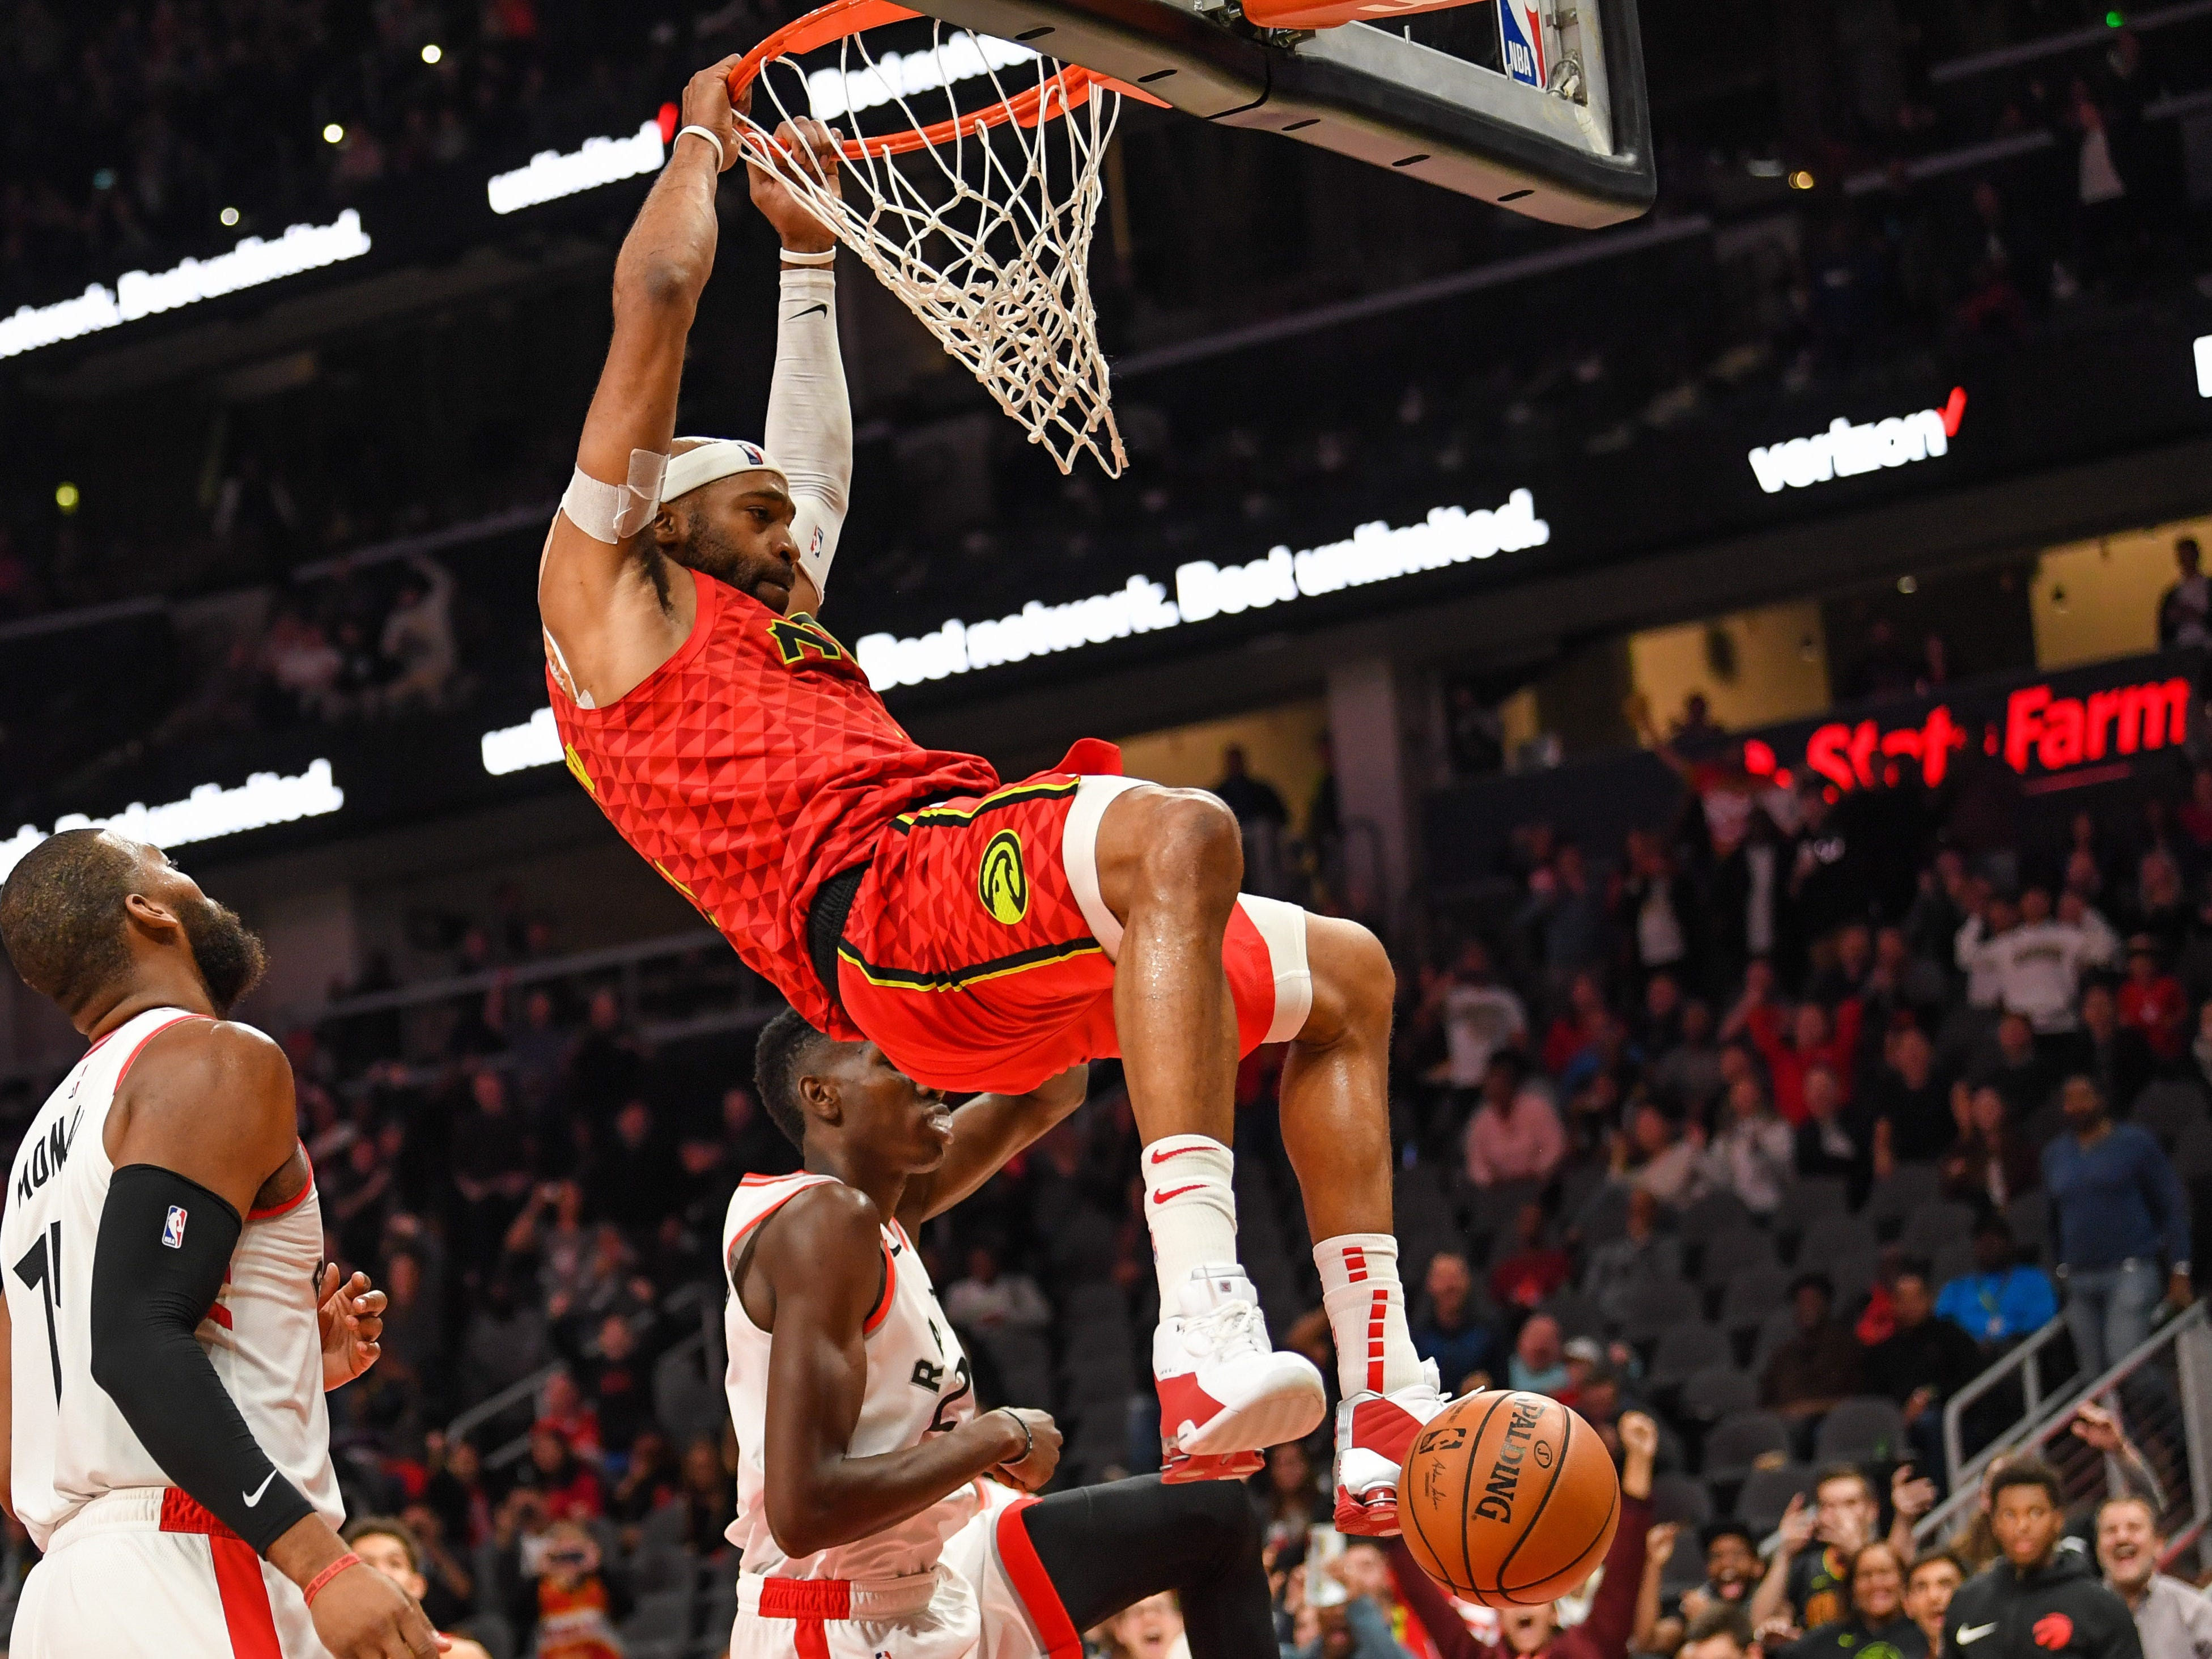 Nov. 21: Hawks forward Vince Carter scores his 25,000th career point on a dunk.